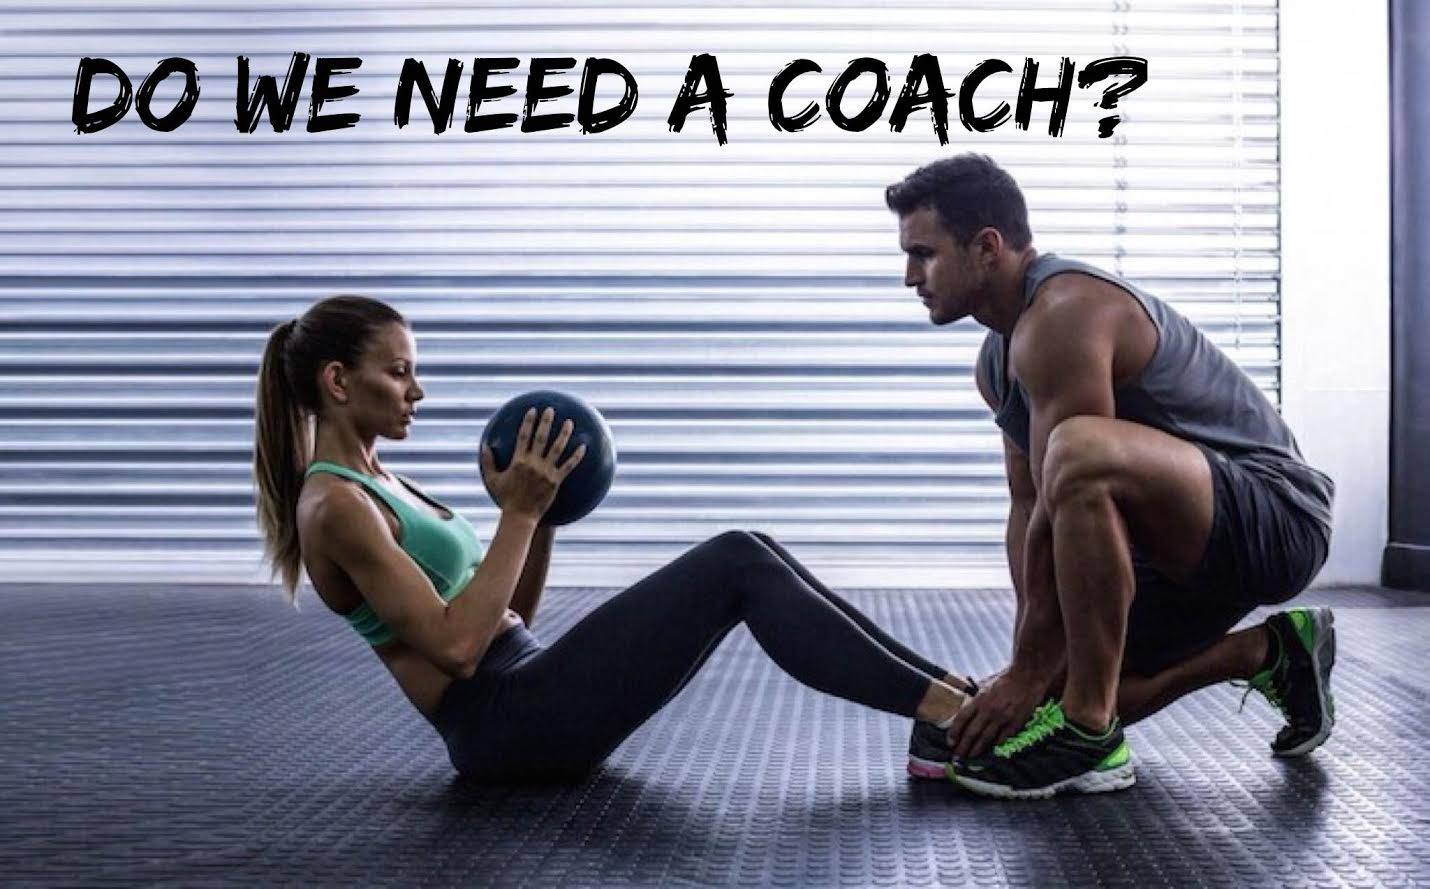 Should Personal Trainers Have Their Own Personal Trainer?